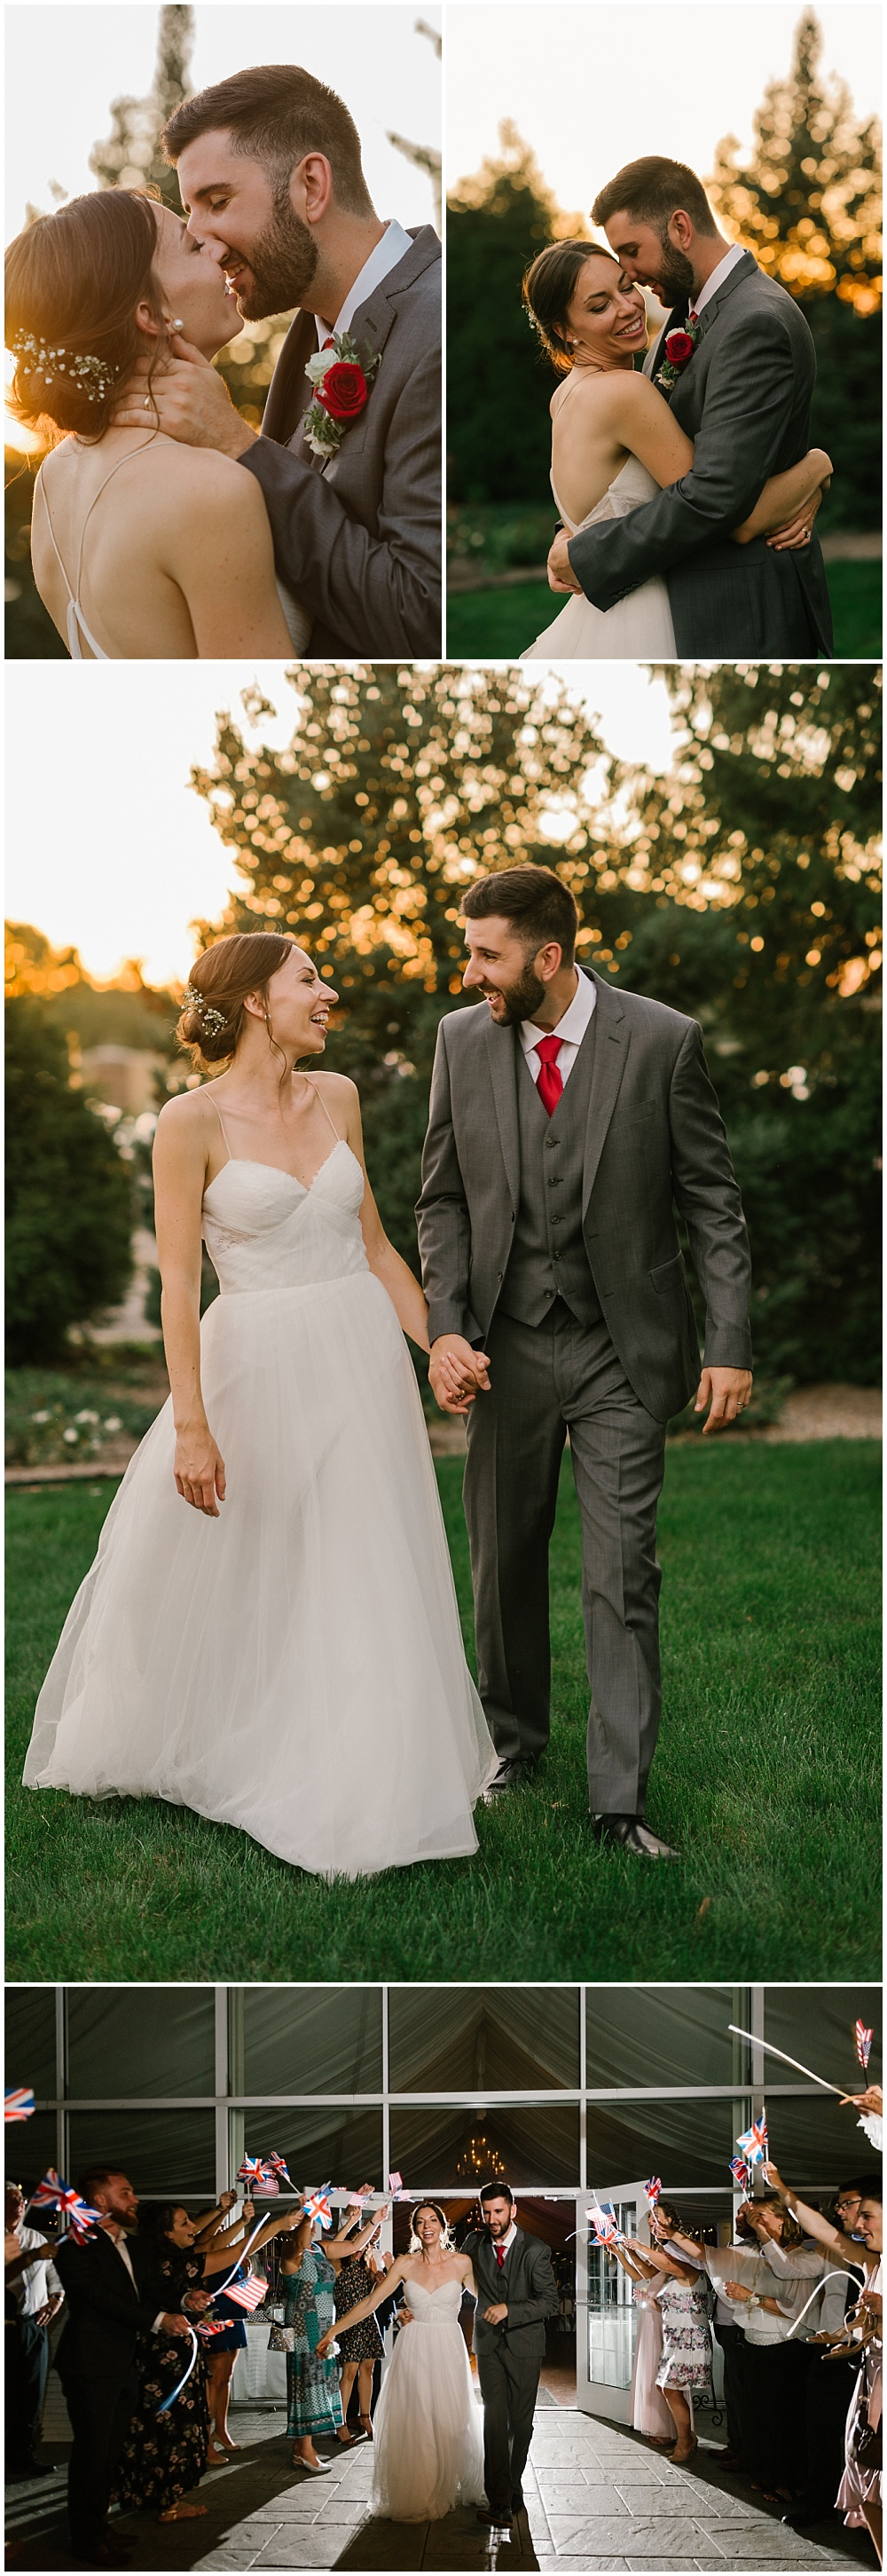 Bride and groom sunset portraits and formal exit with British and American flags Fall garden-inspired wedding at the Ritz Charles Garden Pavilion in Carmel, Indiana   Jessica Dum Wedding Coordination